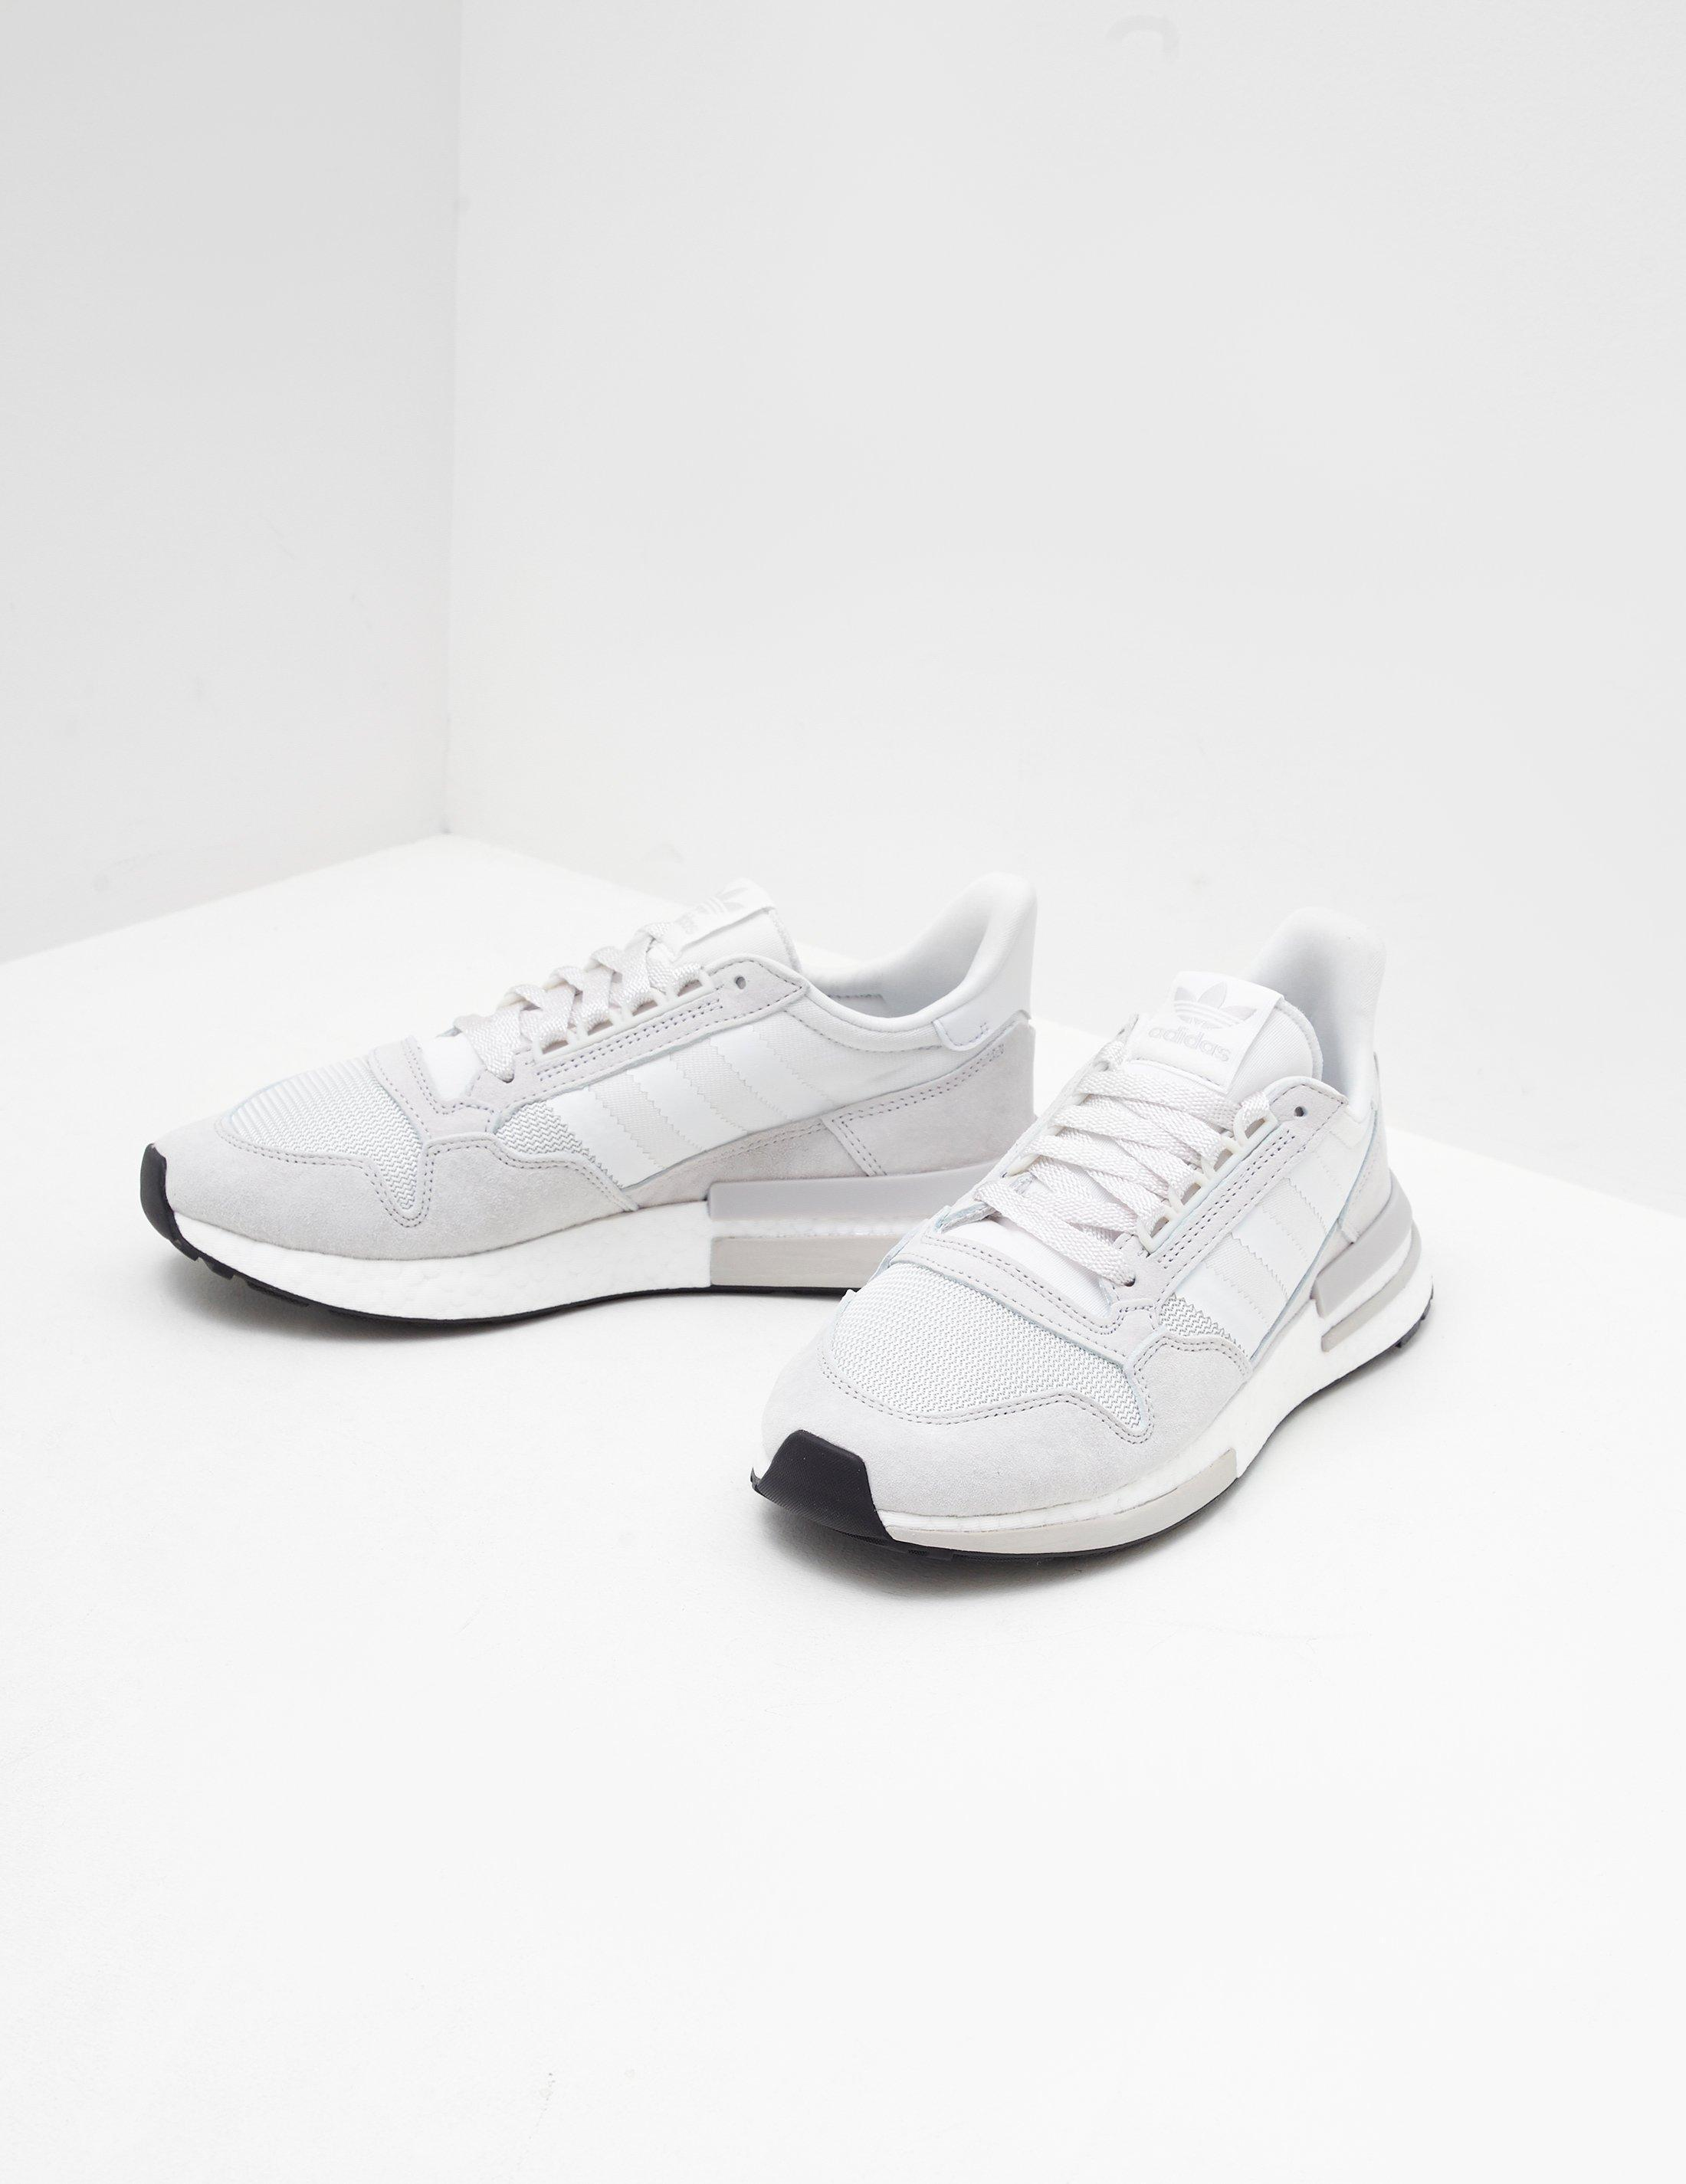 645beb77a1c19 Lyst - adidas Originals Zx 500 Rm White in White for Men